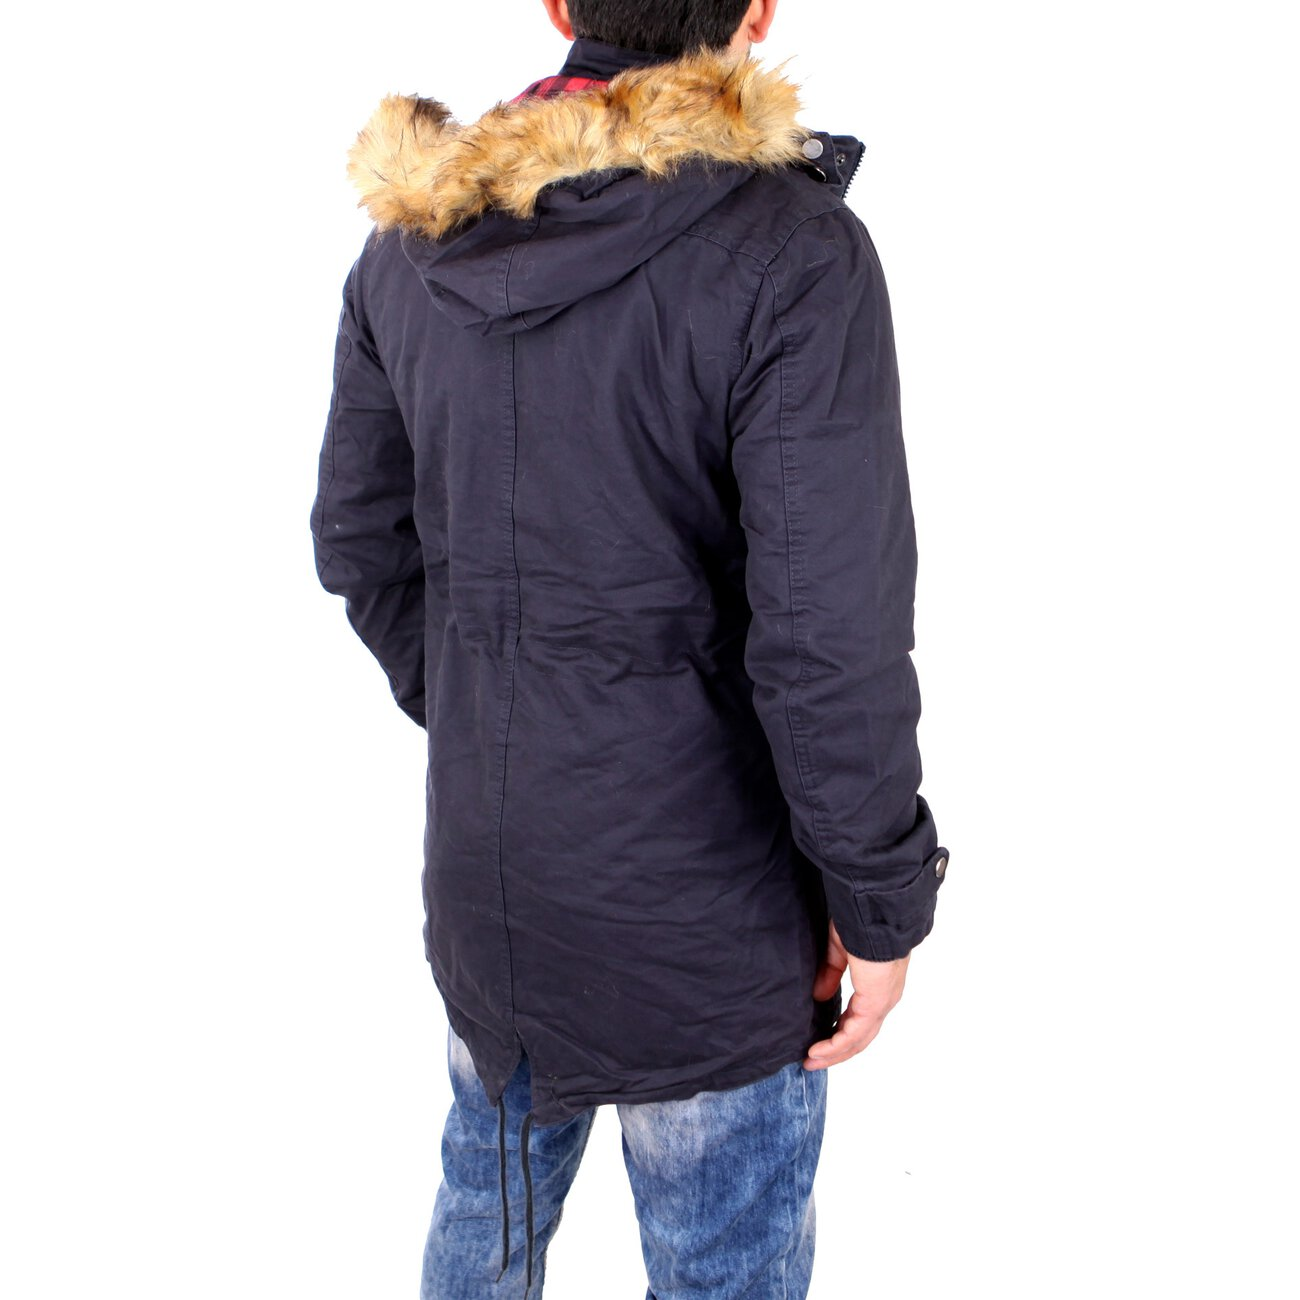 reslad parka herren winterjacke mit fellkapuze herrenparka. Black Bedroom Furniture Sets. Home Design Ideas